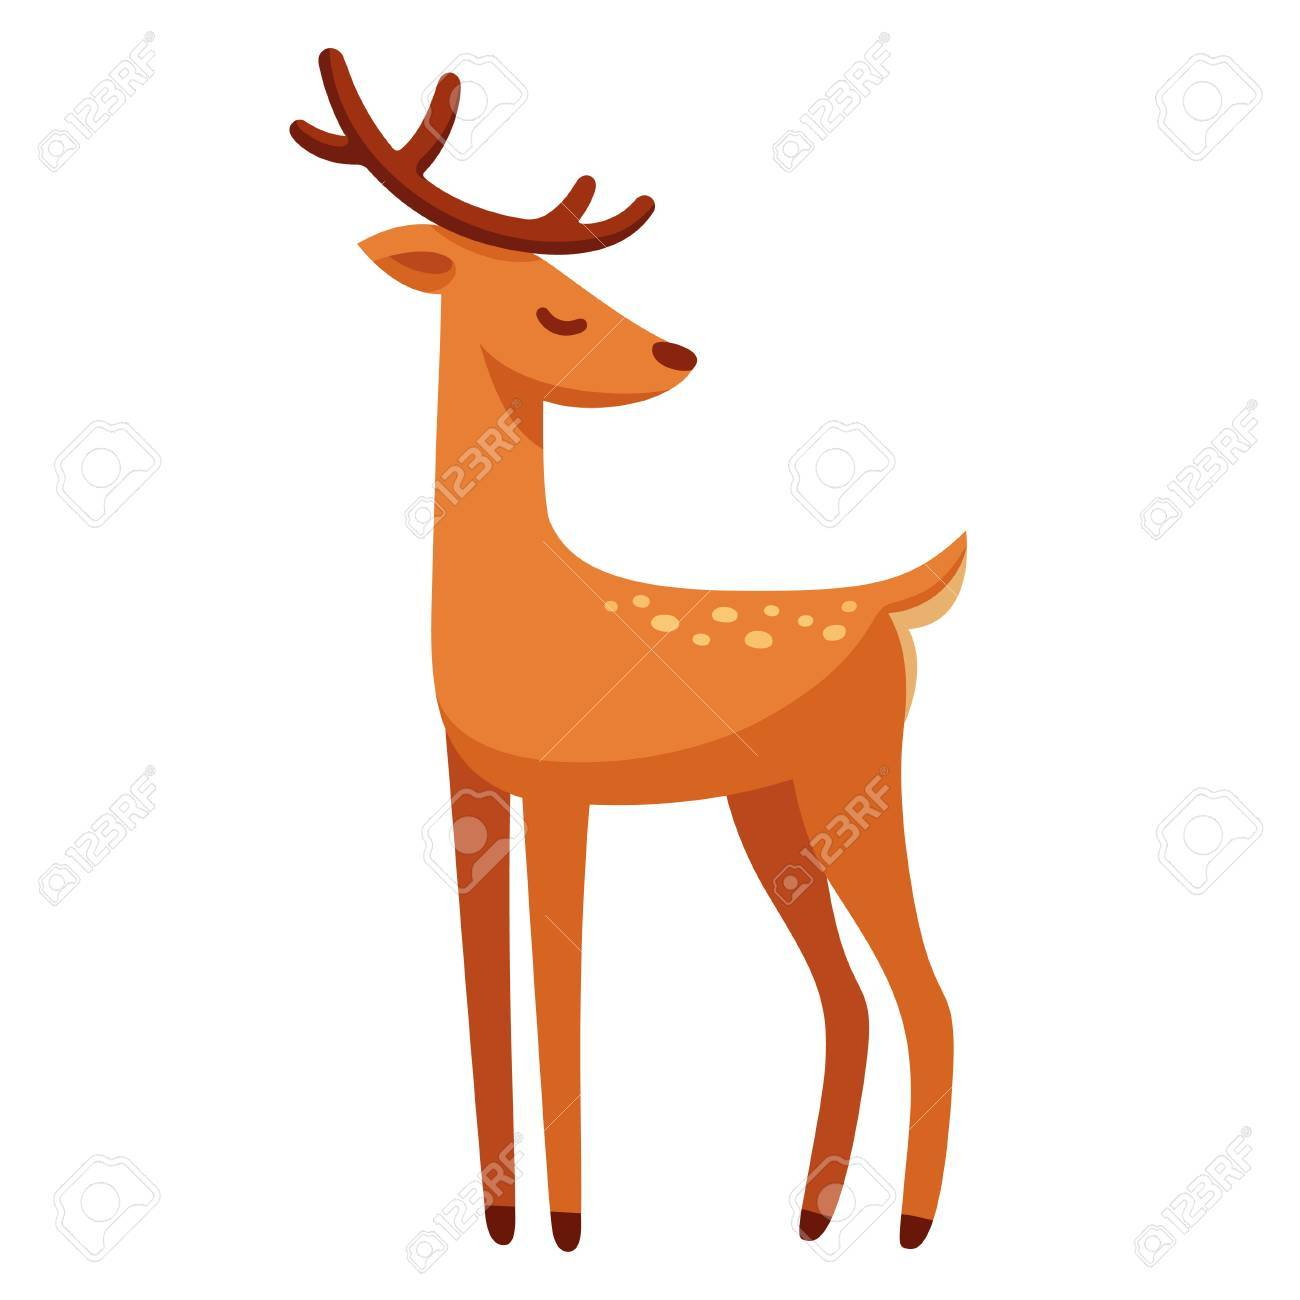 Cartoon Male Deer Drawing Royalty Free Cliparts Vectors And Stock